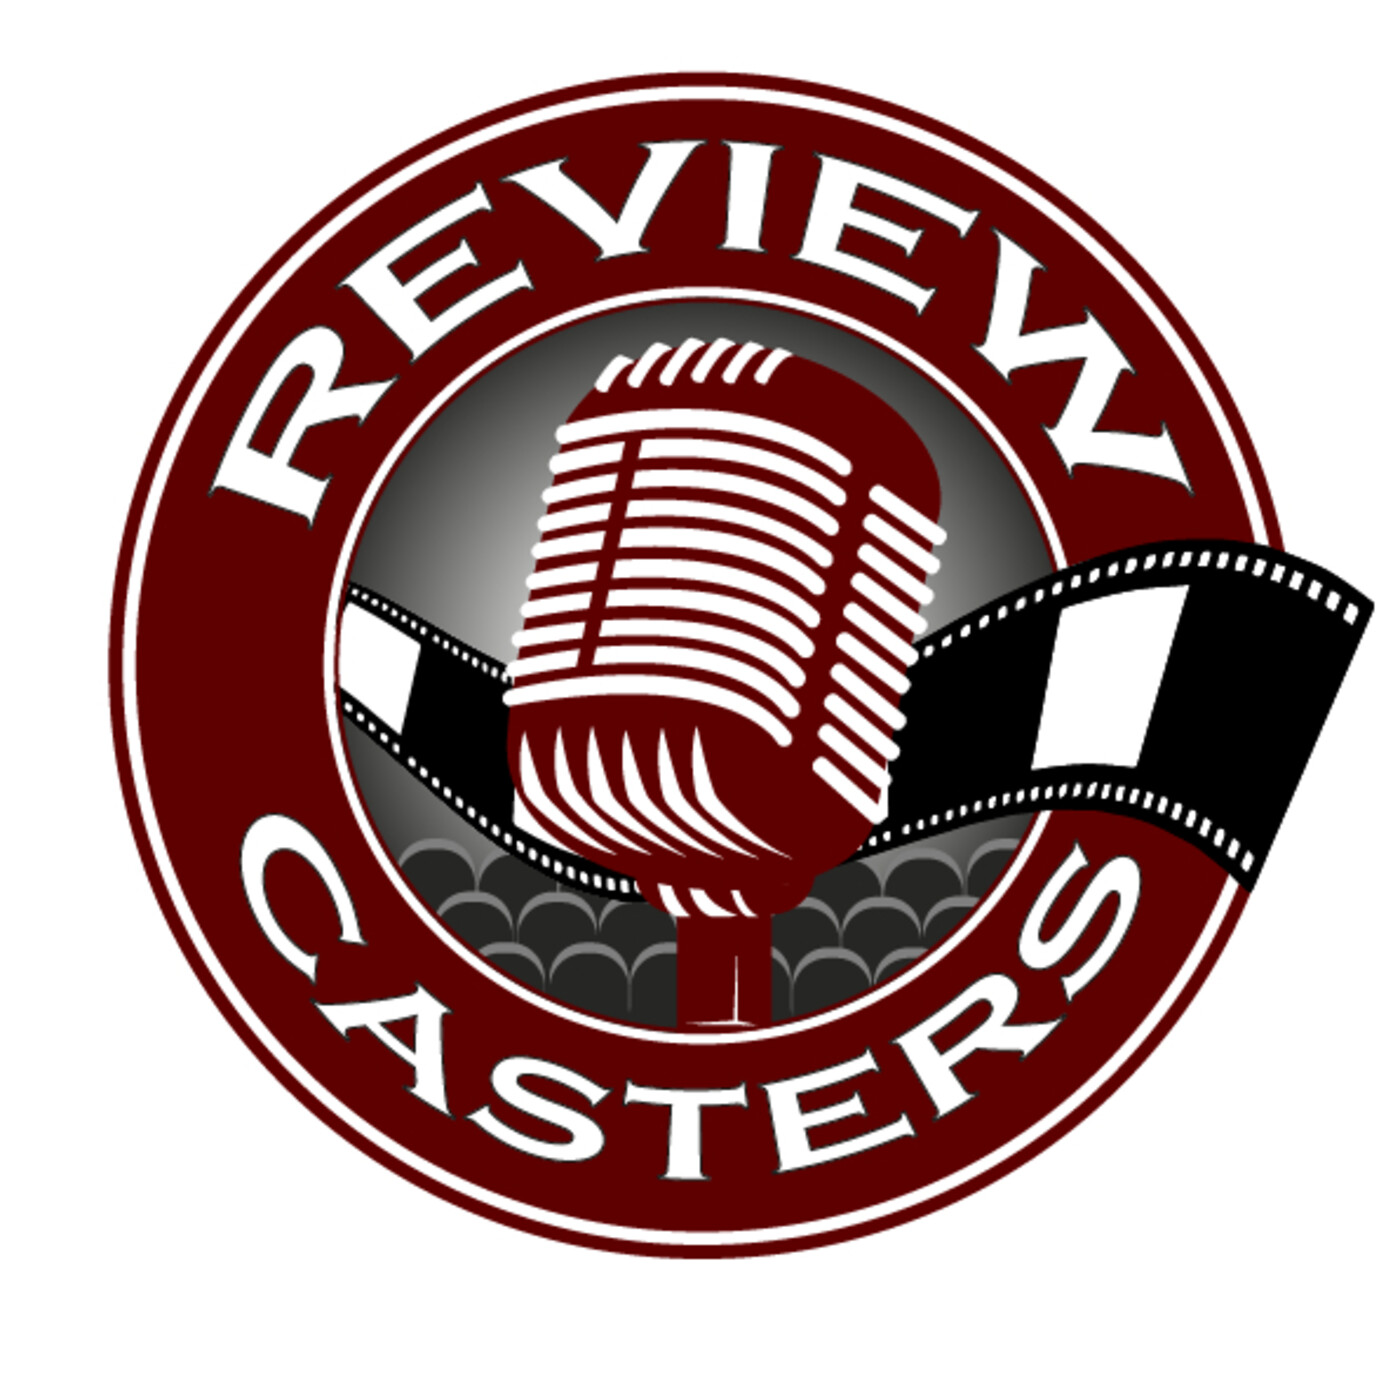 ReviewCasters